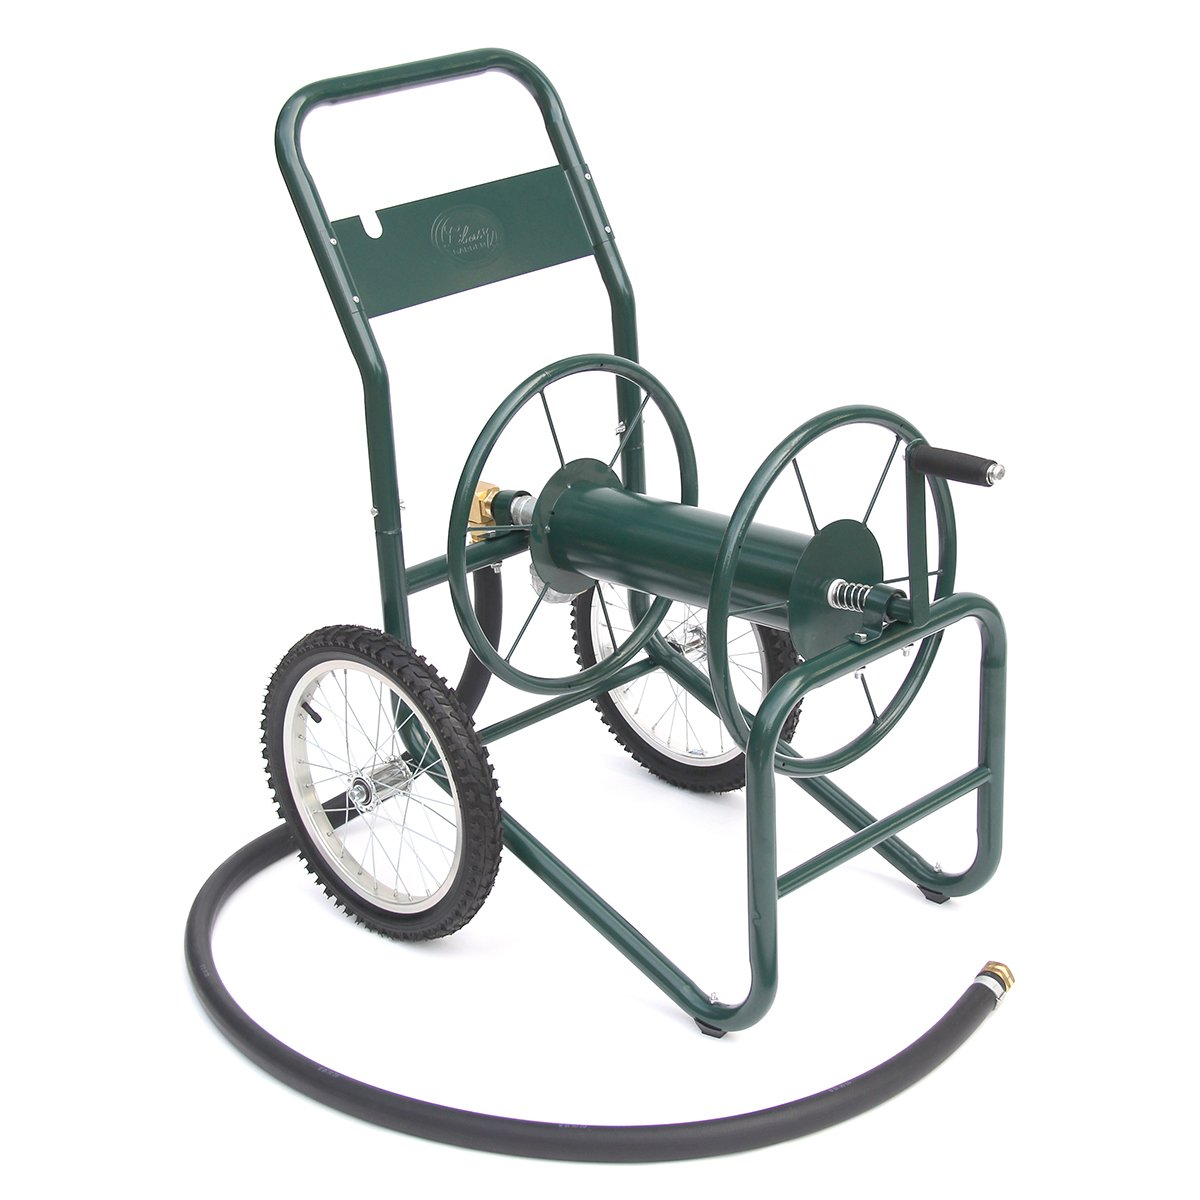 Liberty Garden Products 1180-2 Industrial 2-Wheel Garden Hose Reel Cart, Holds 150-Feet of 1-Inch Hose - Green